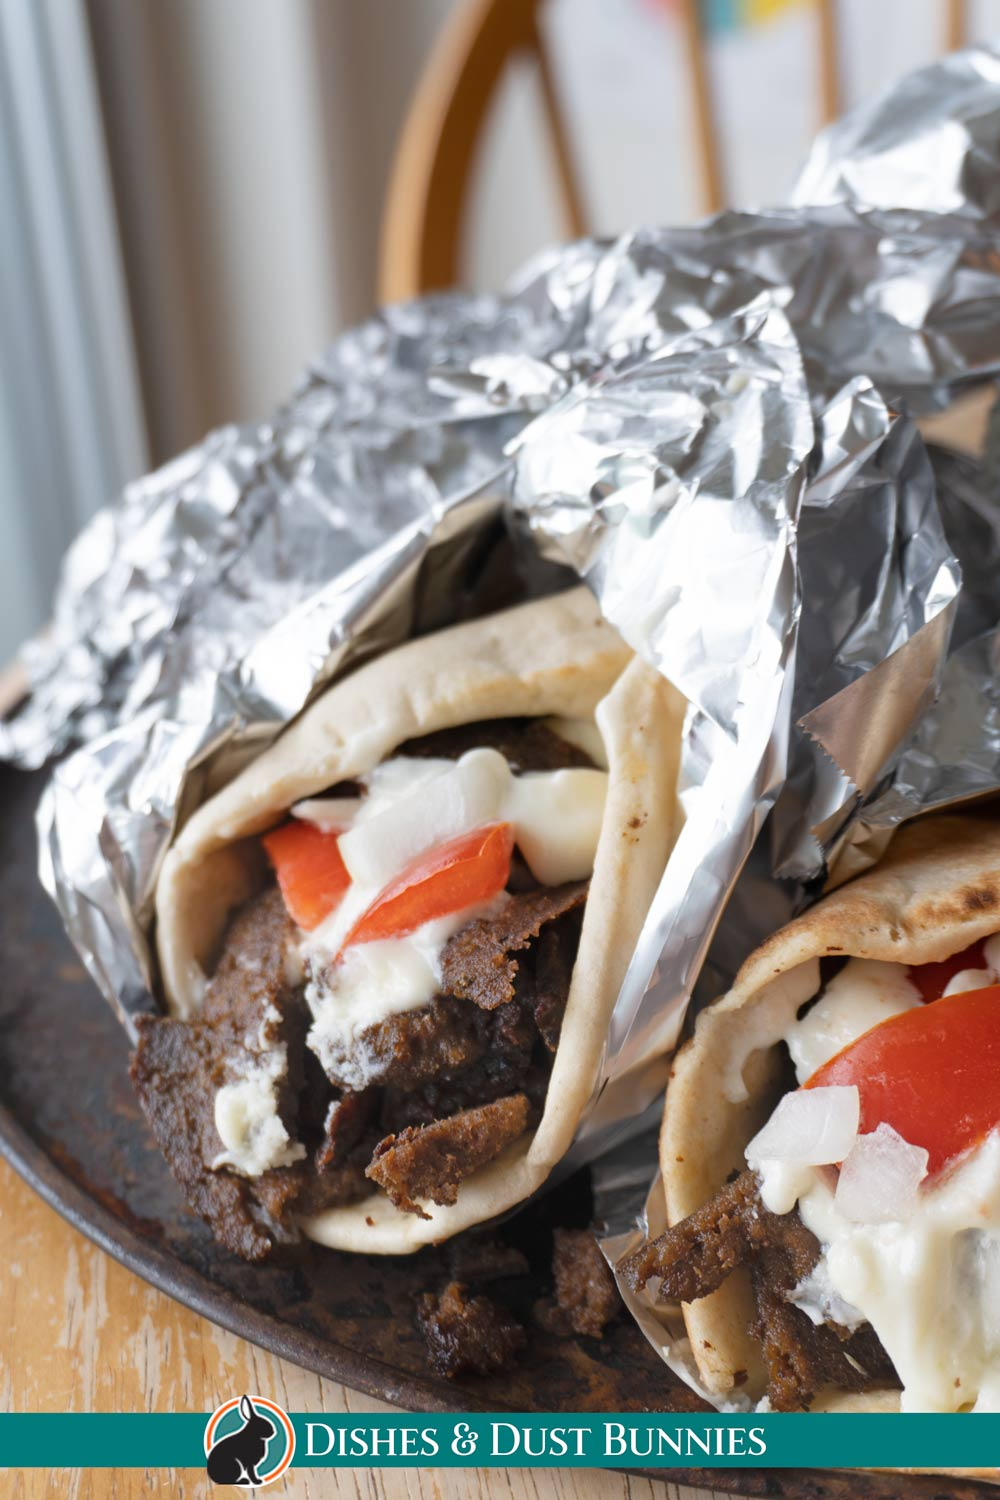 Donairs with Dona Sauce on them